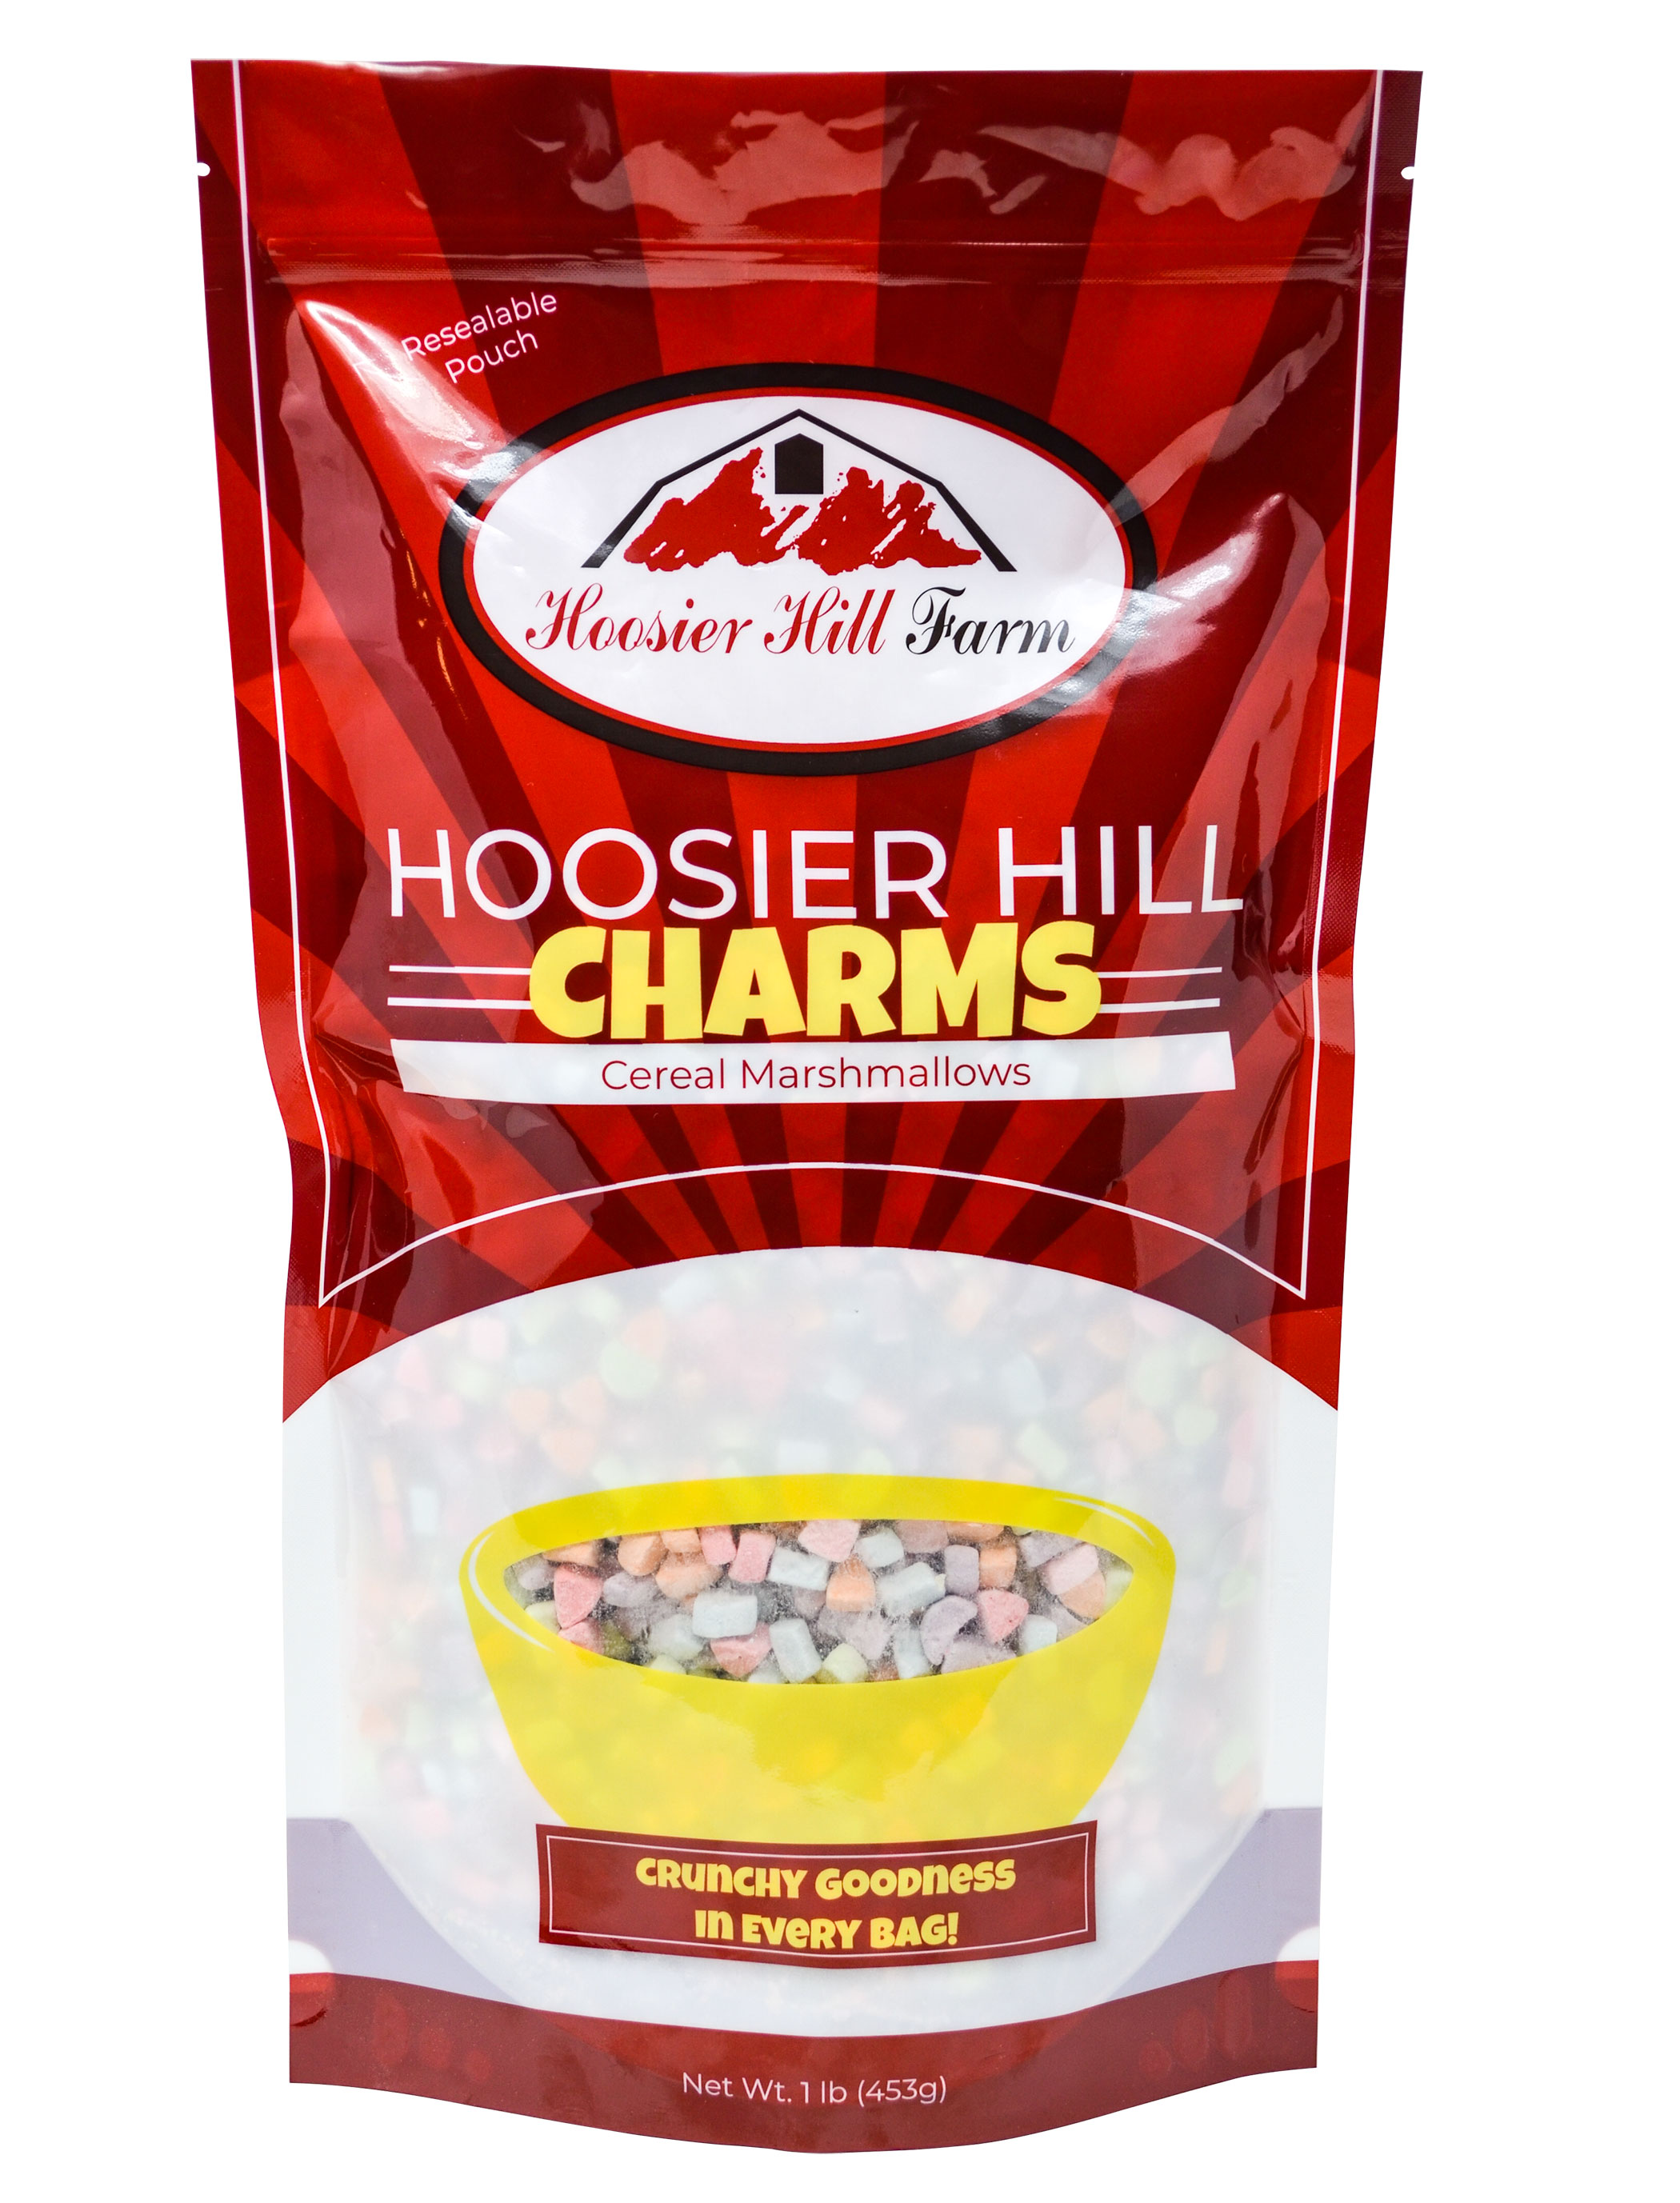 Hoosier Hill Charms Cereal Marshmallows, 1 Pound